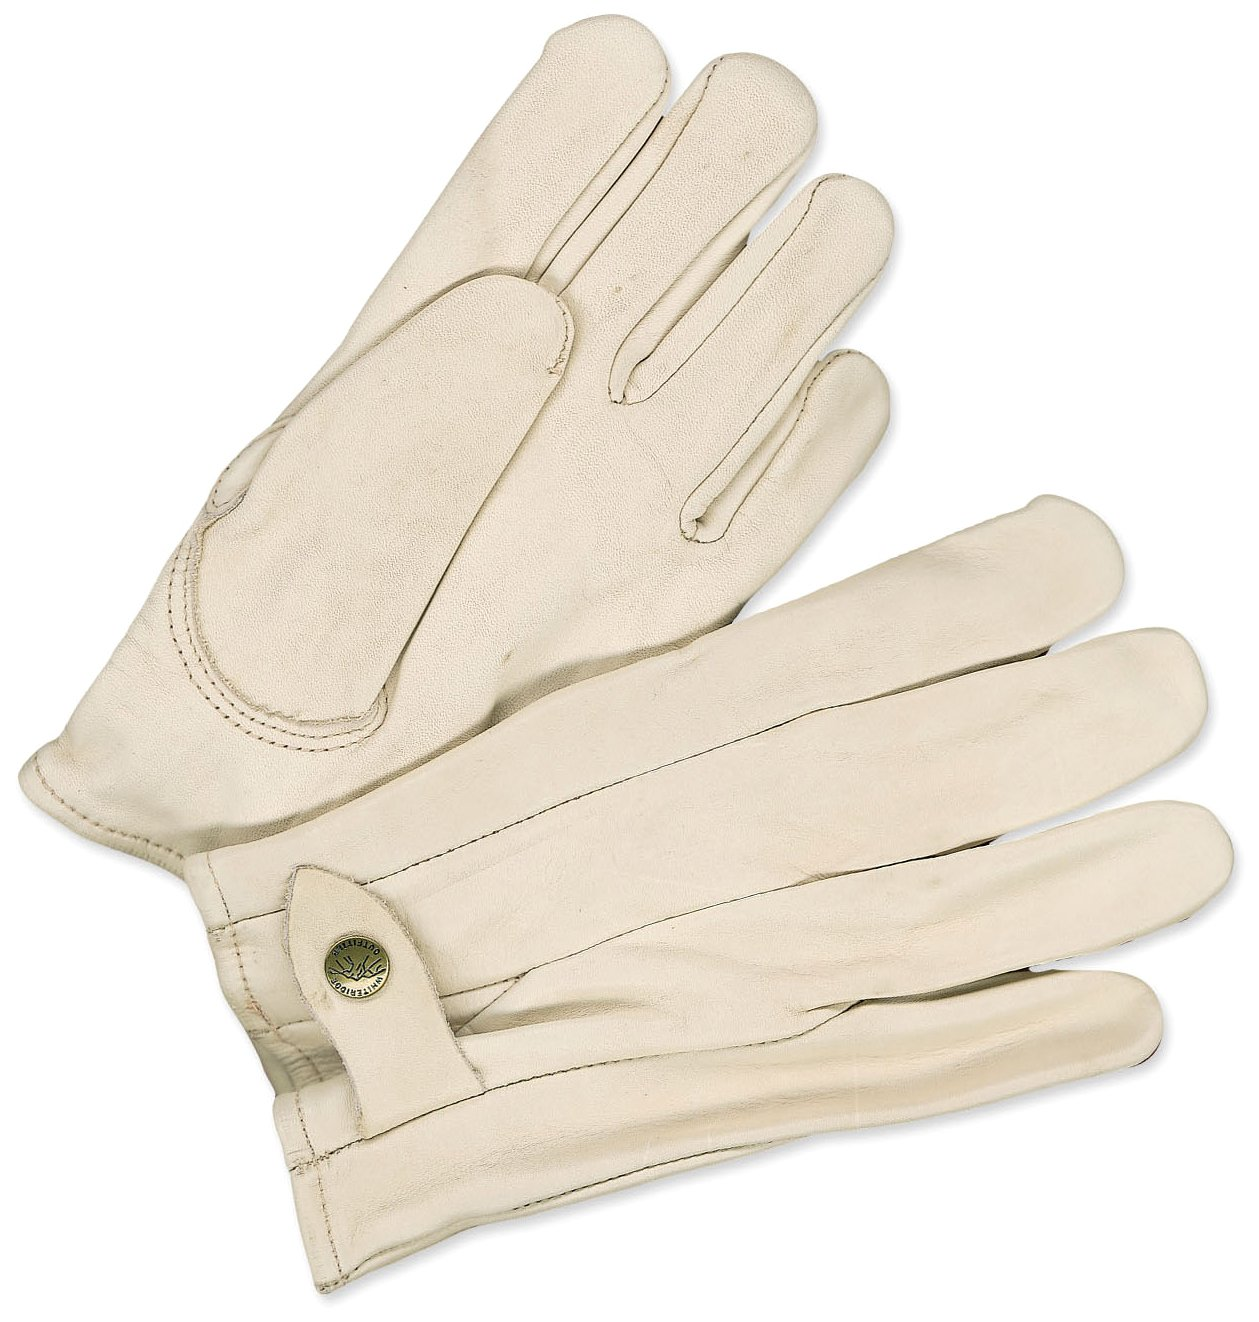 X-Large BDG 20-1-379-XL Leather Roper Glove with Snap